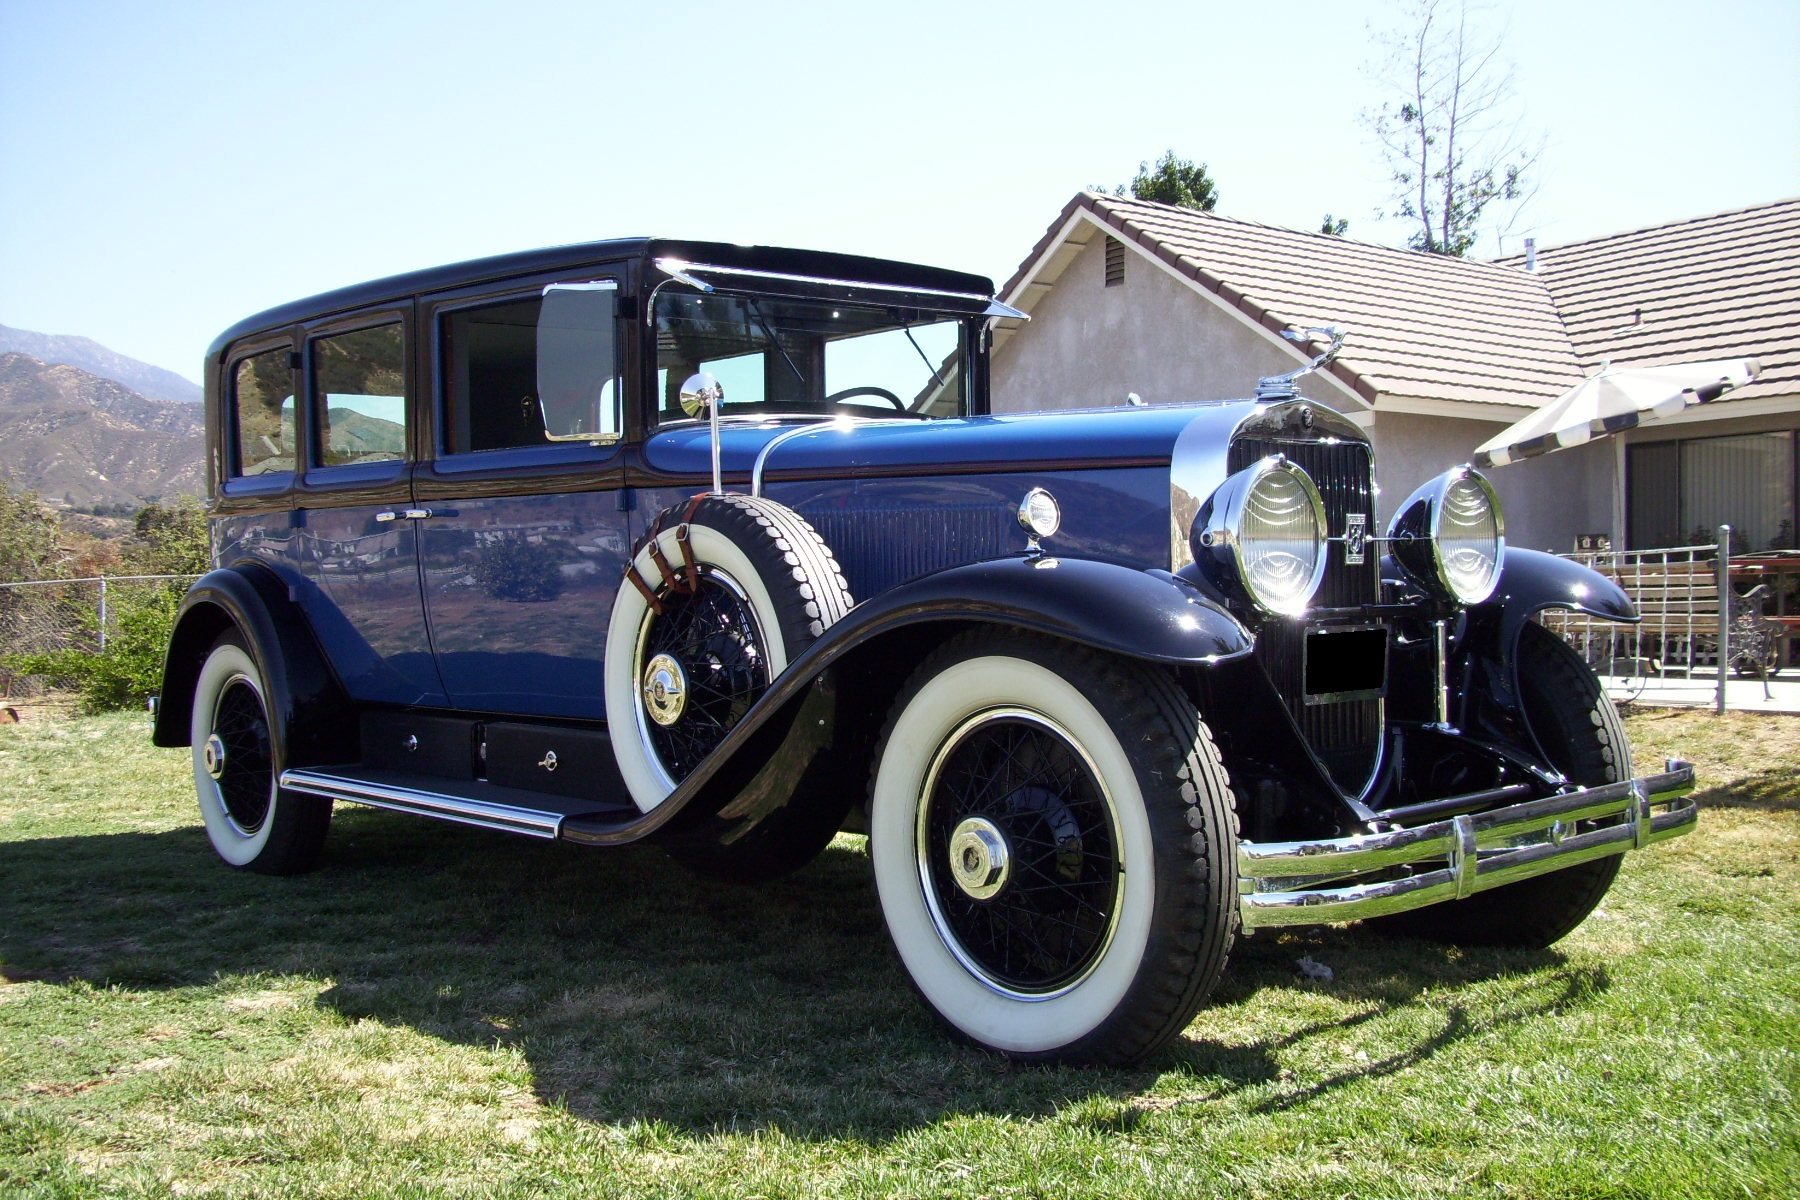 1929 Cadillac Imperial